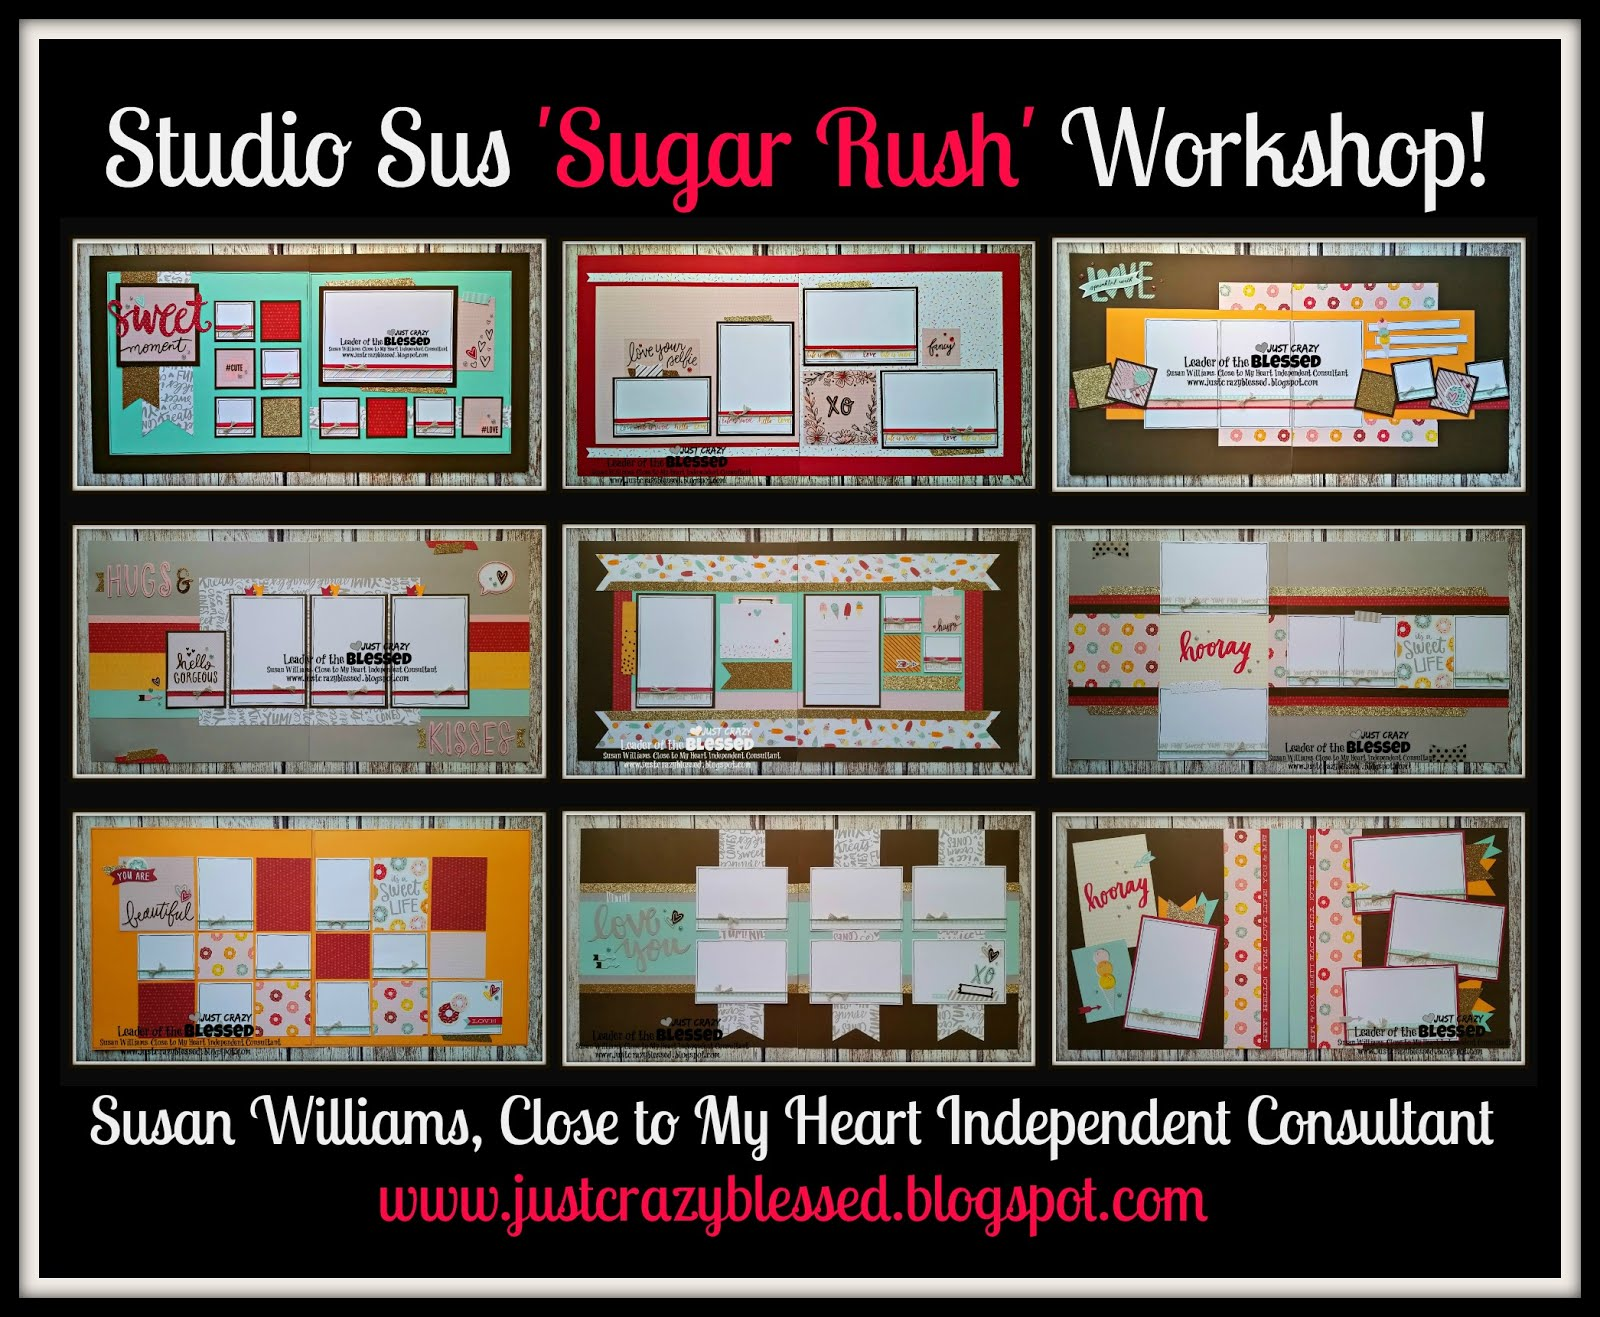 'Sugar Rush' Workshop!